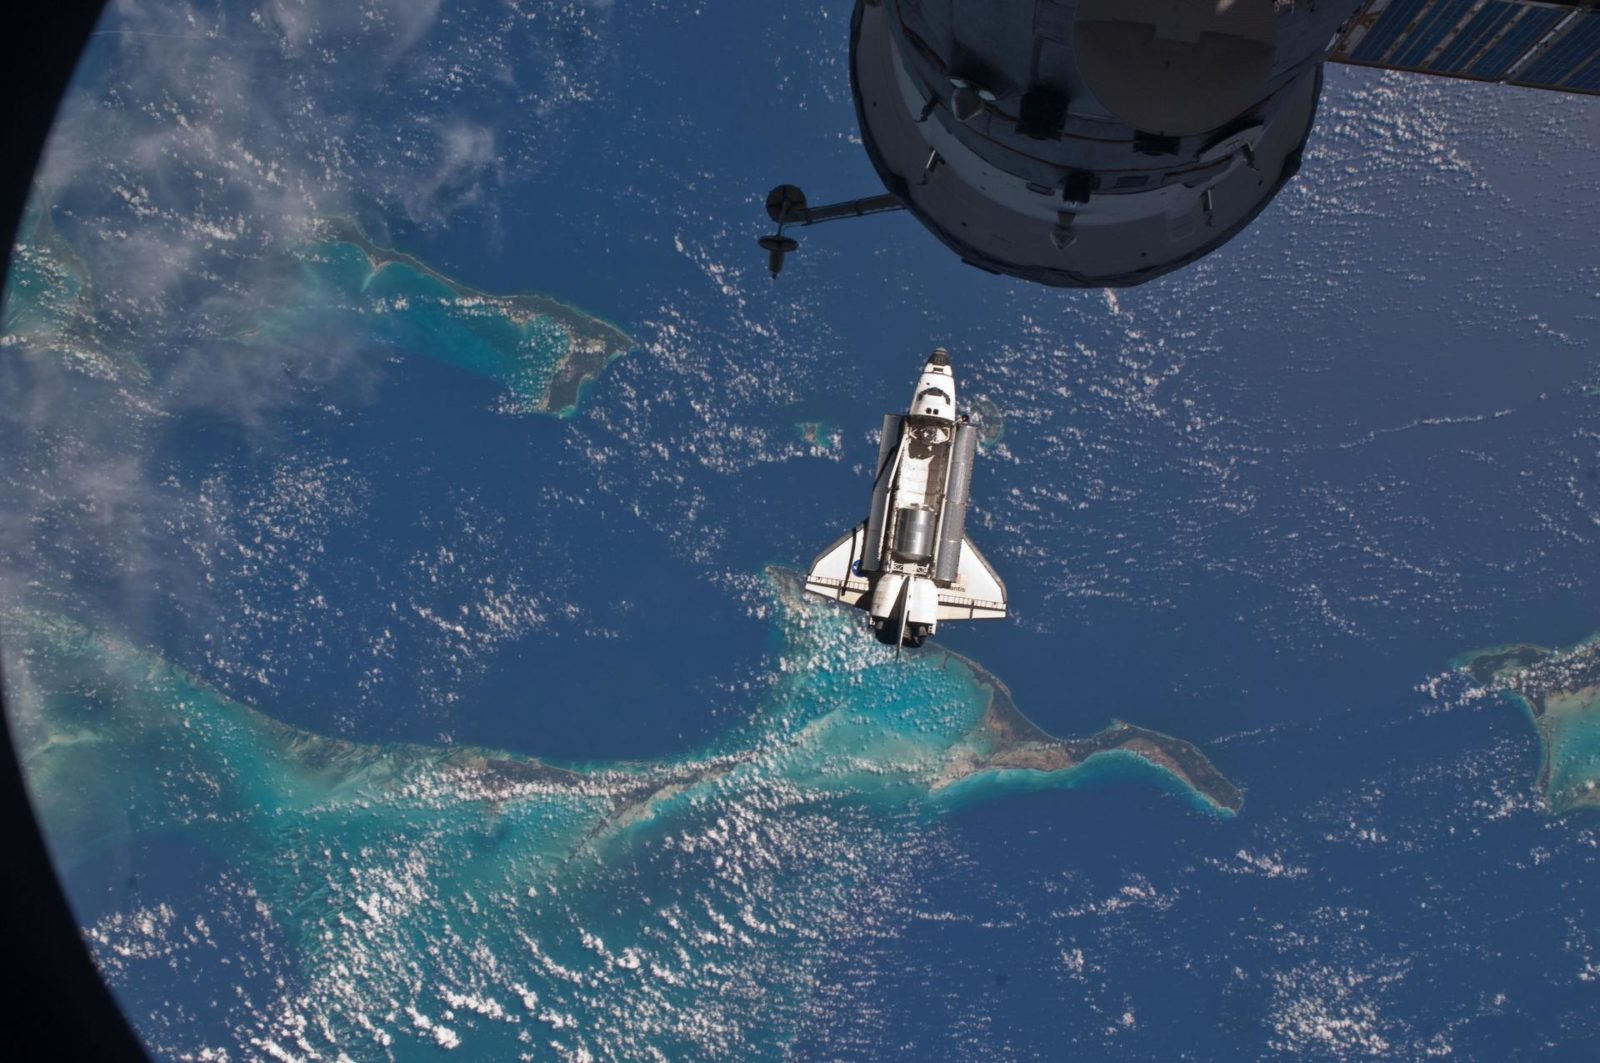 View of the Shuttle Atlantis during approach to the ISS